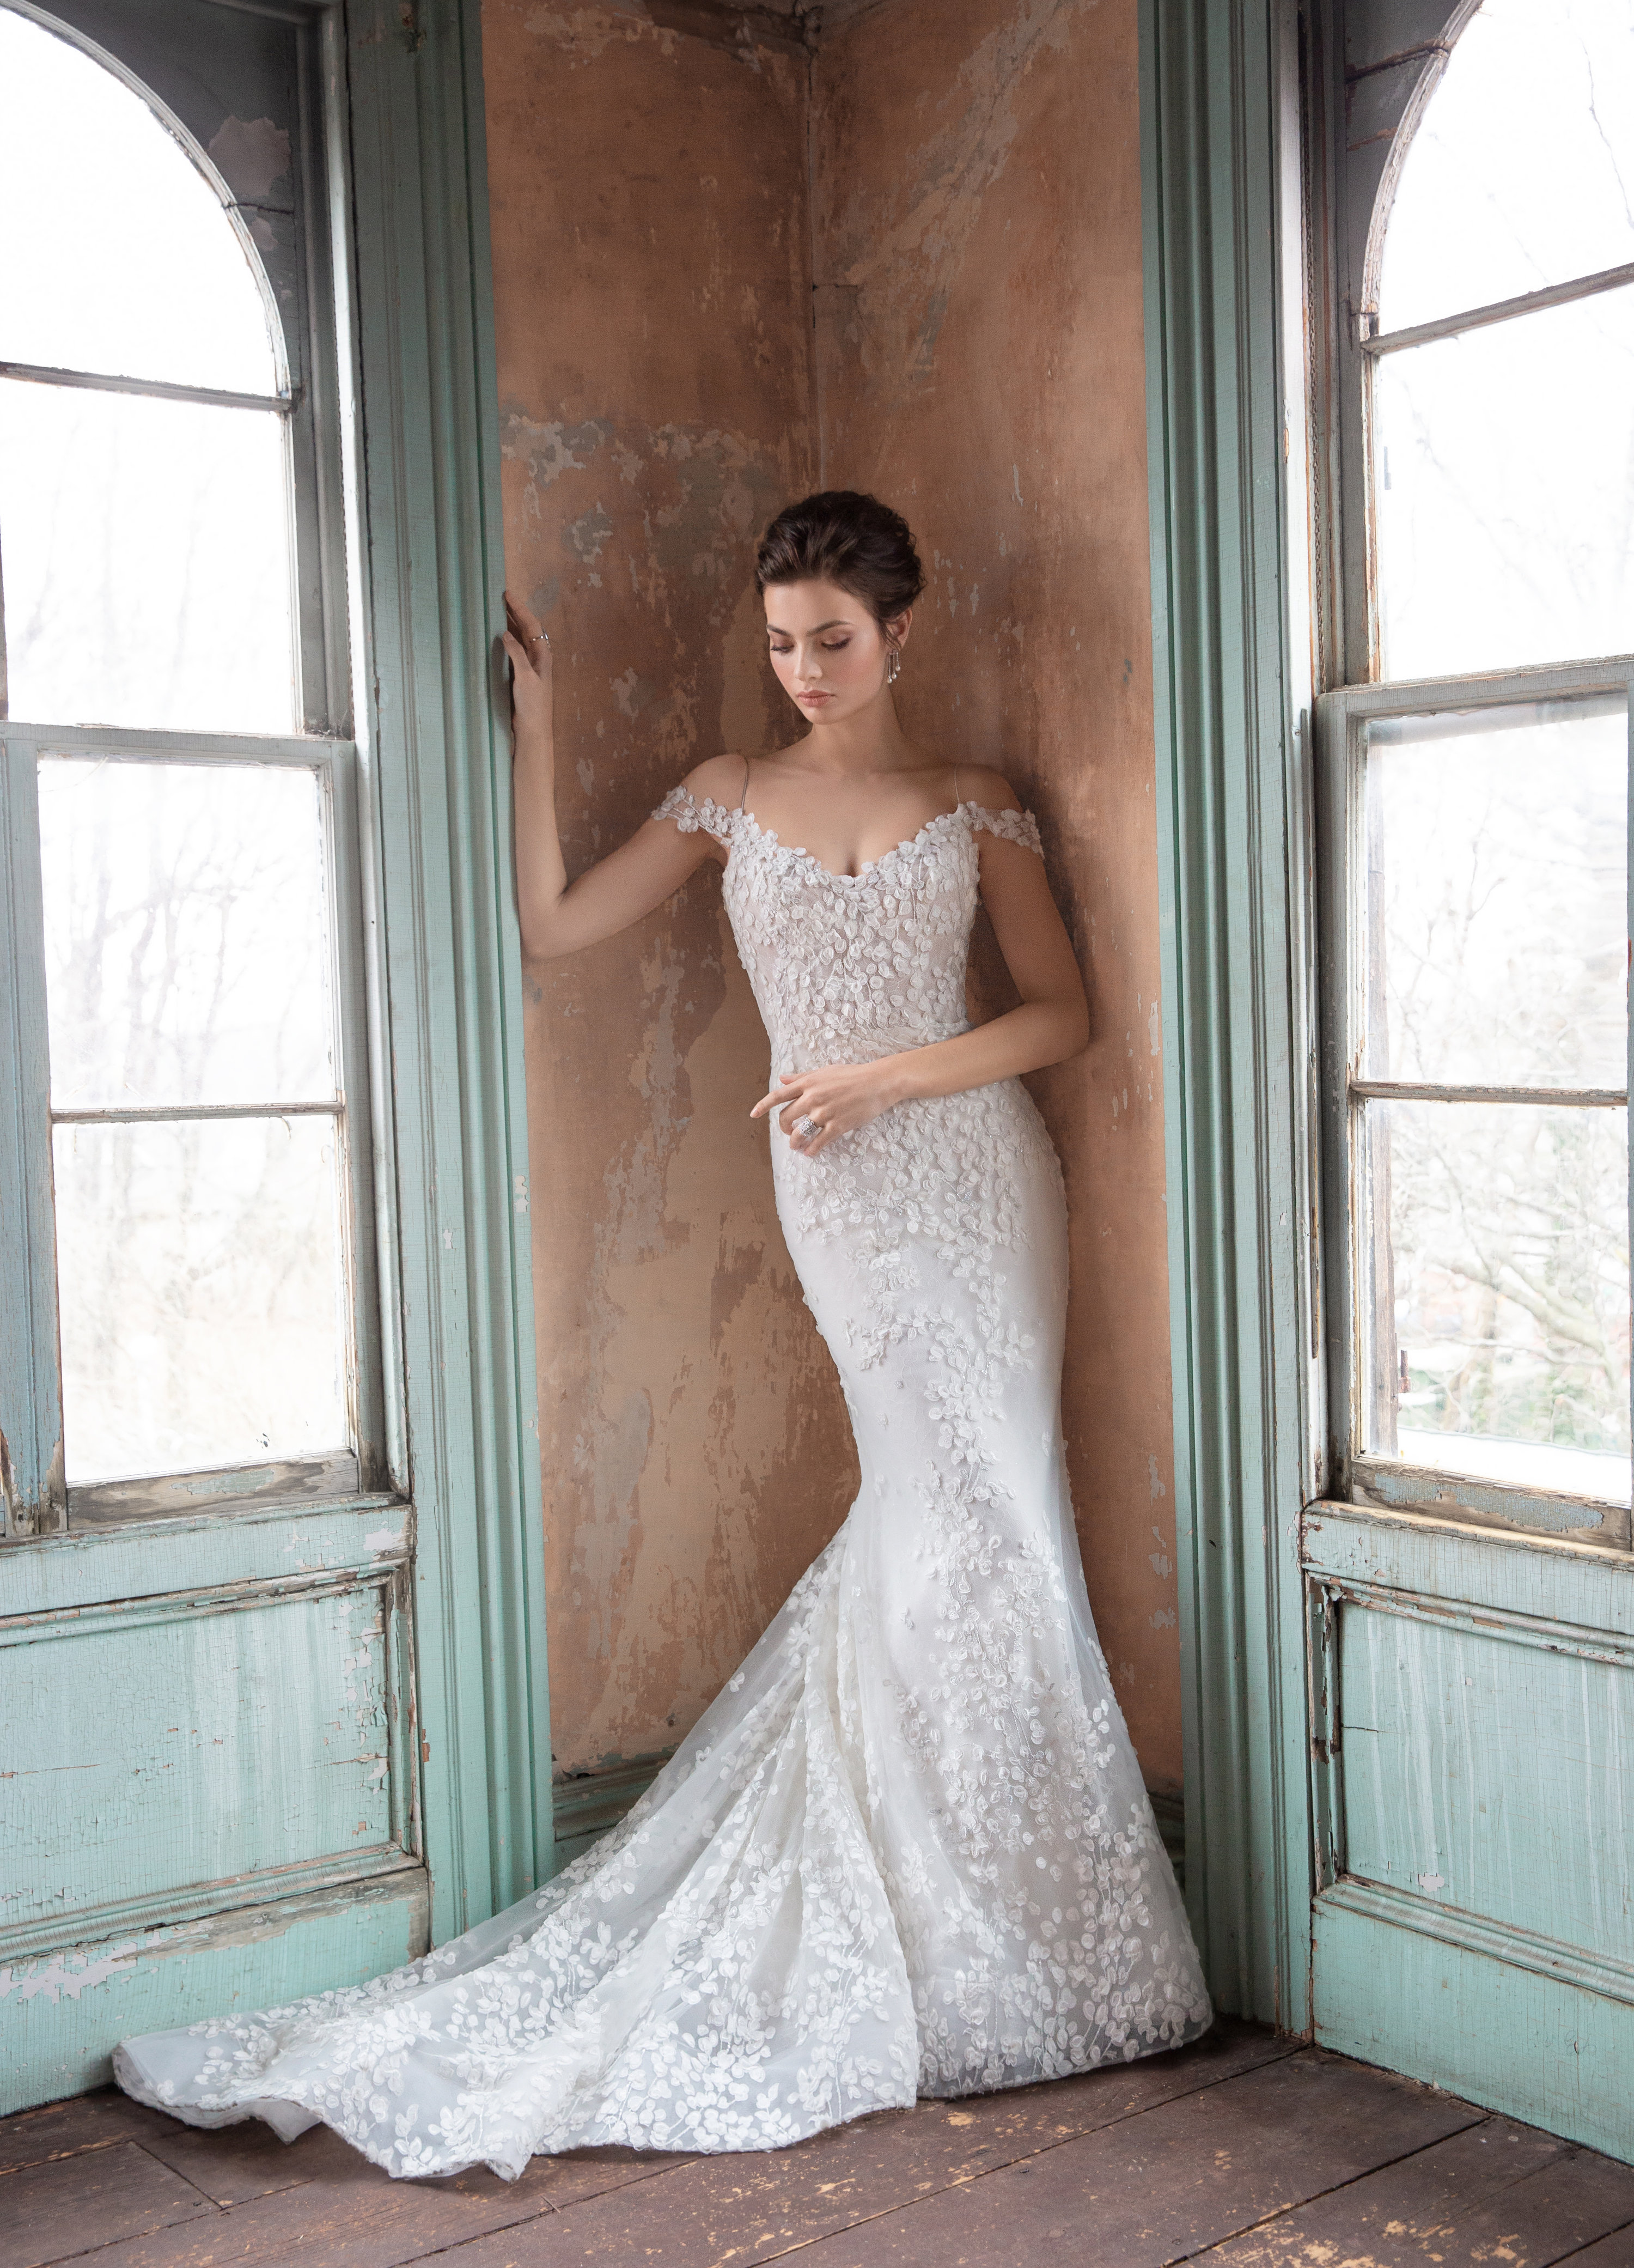 bc55c3e1b975 Bridal Gowns and Wedding Dresses by JLM Couture - Style 3914 Olivia